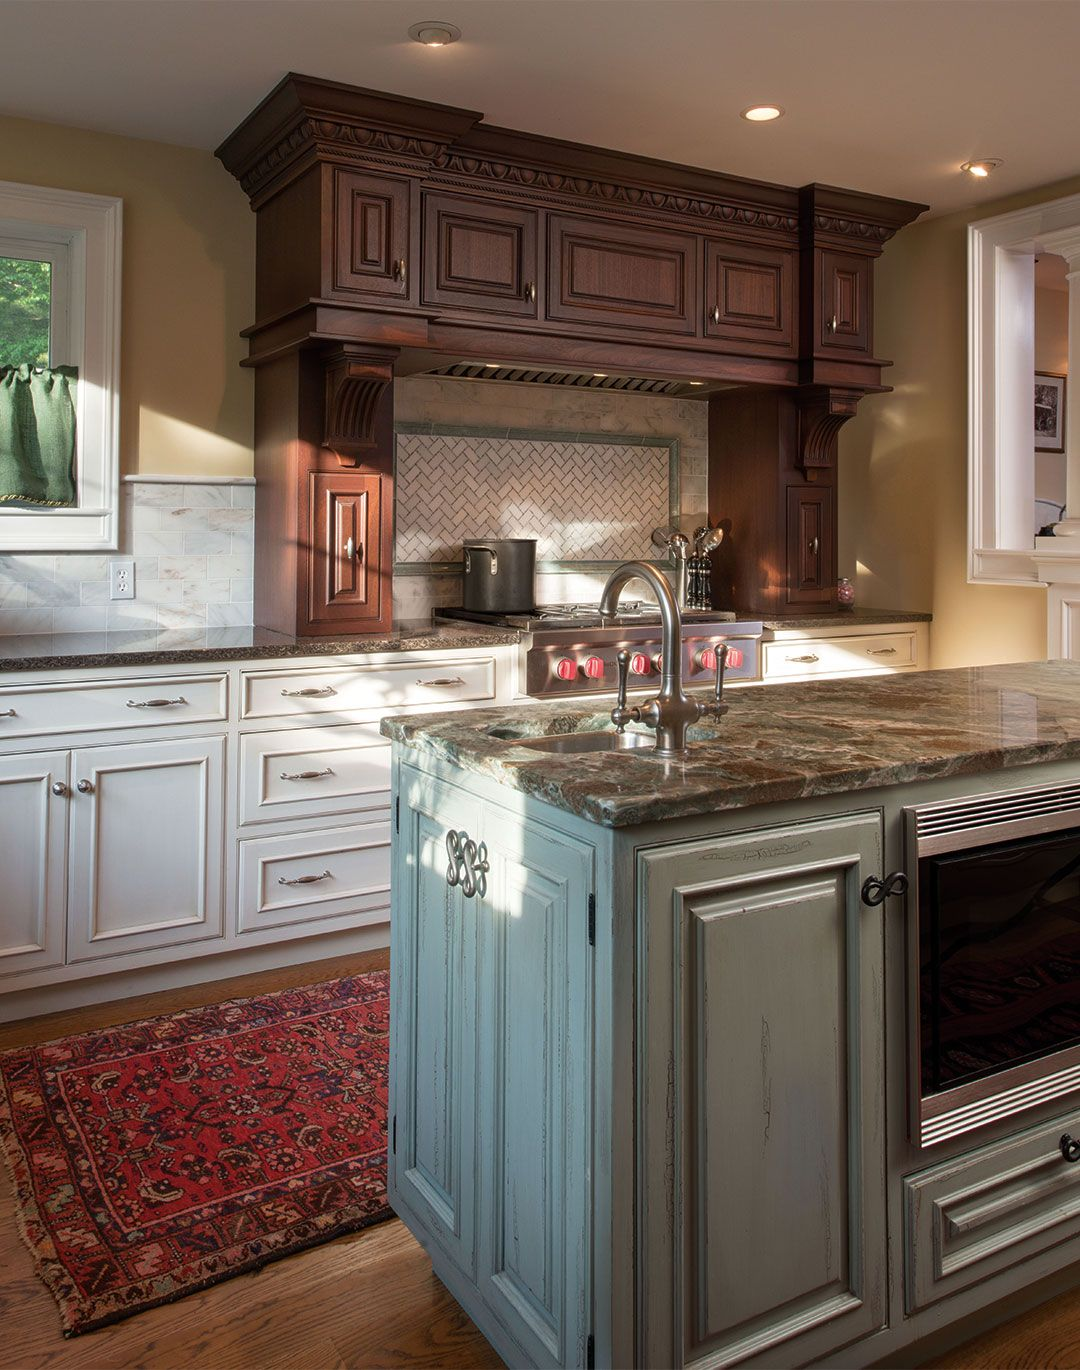 An Elaborate Mahogany Range Hood Is The Central Focus Of This Traditional Kitchen Traditional Kitchen Cottage Style Kitchen Kitchen Cabinet Styles